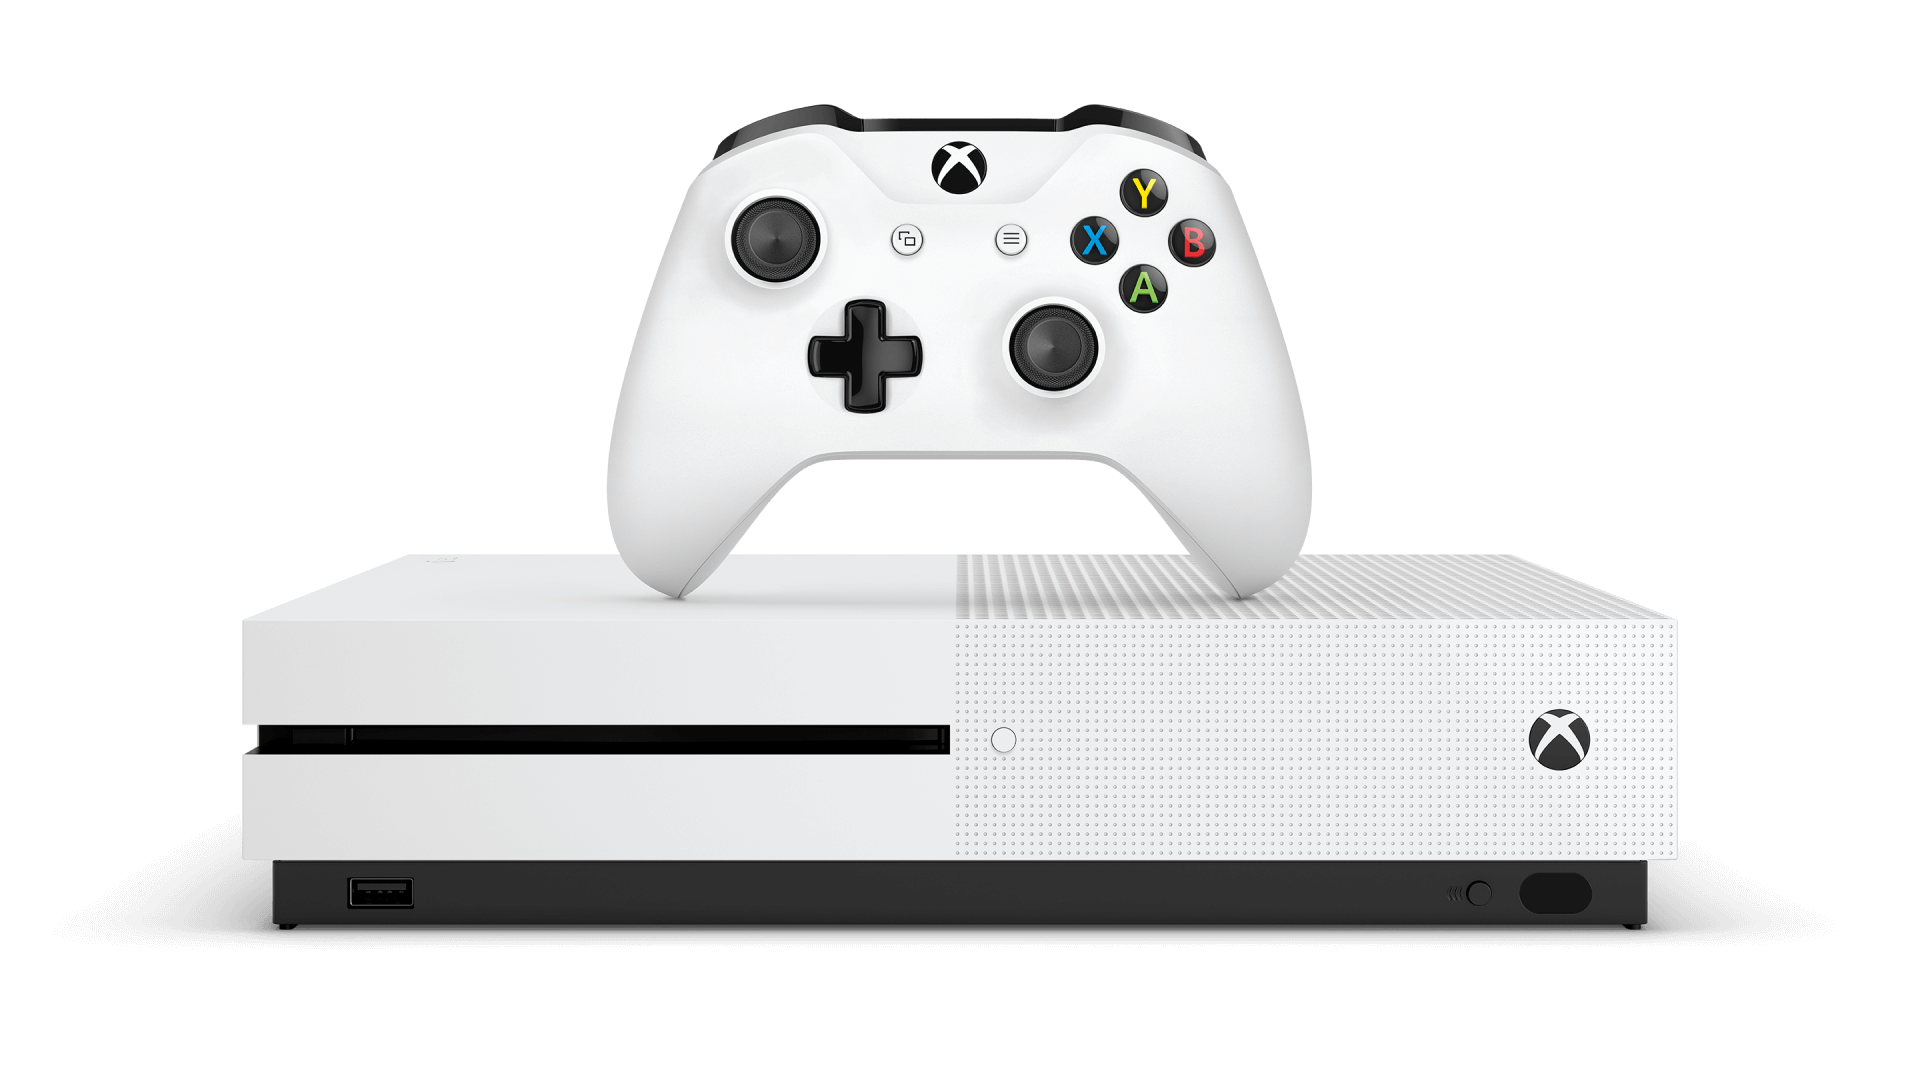 E3 2016: XBOX One S Confirmed - Released this August